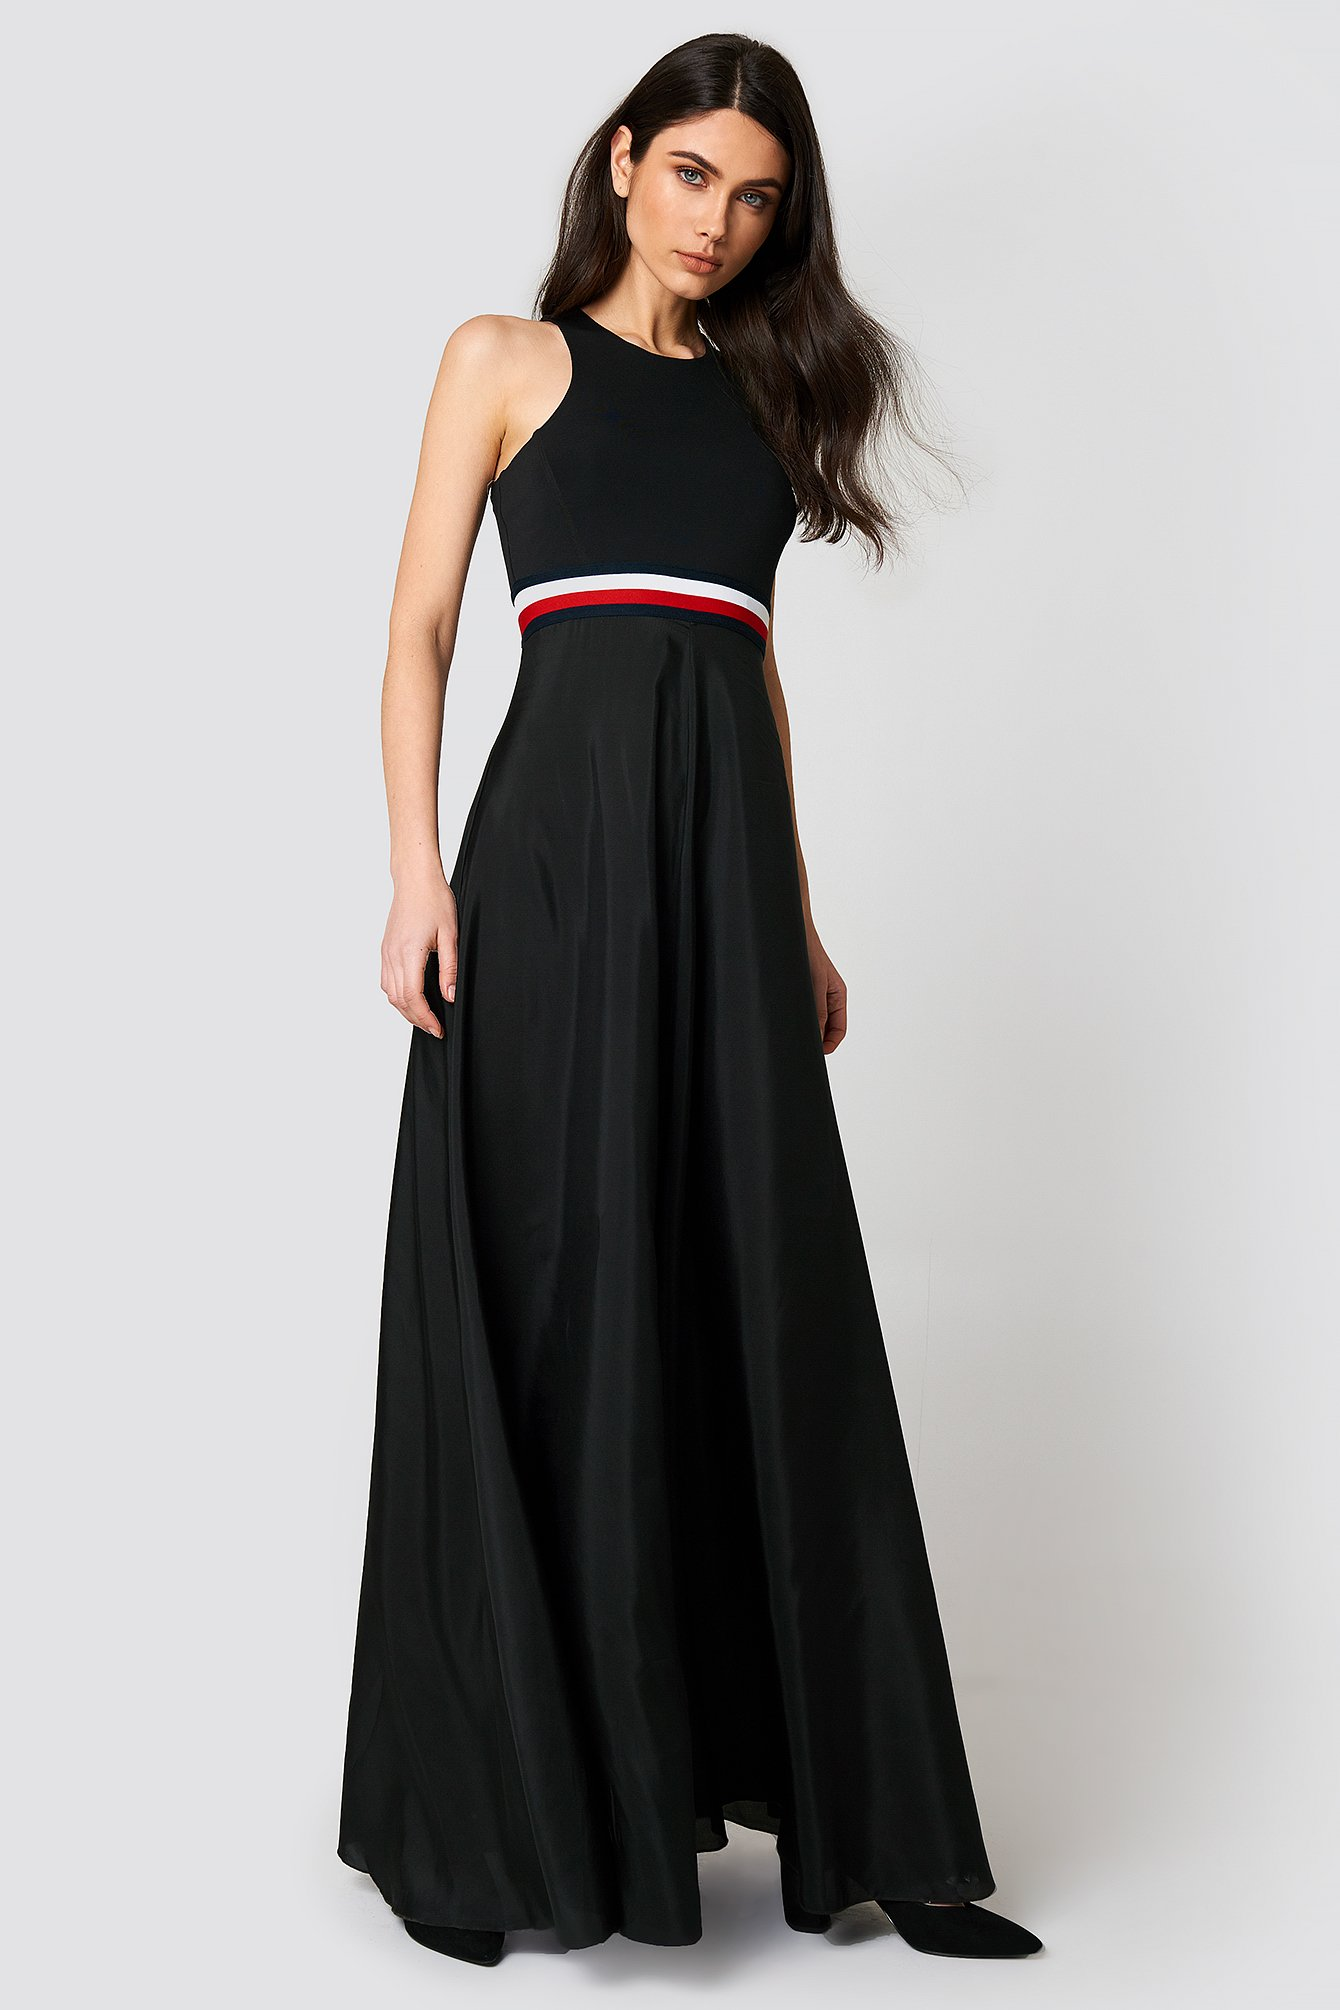 Tommy Hilfiger Gigi Hadid Silk Racer Back Maxi Dress - Black 1478-000125-0681